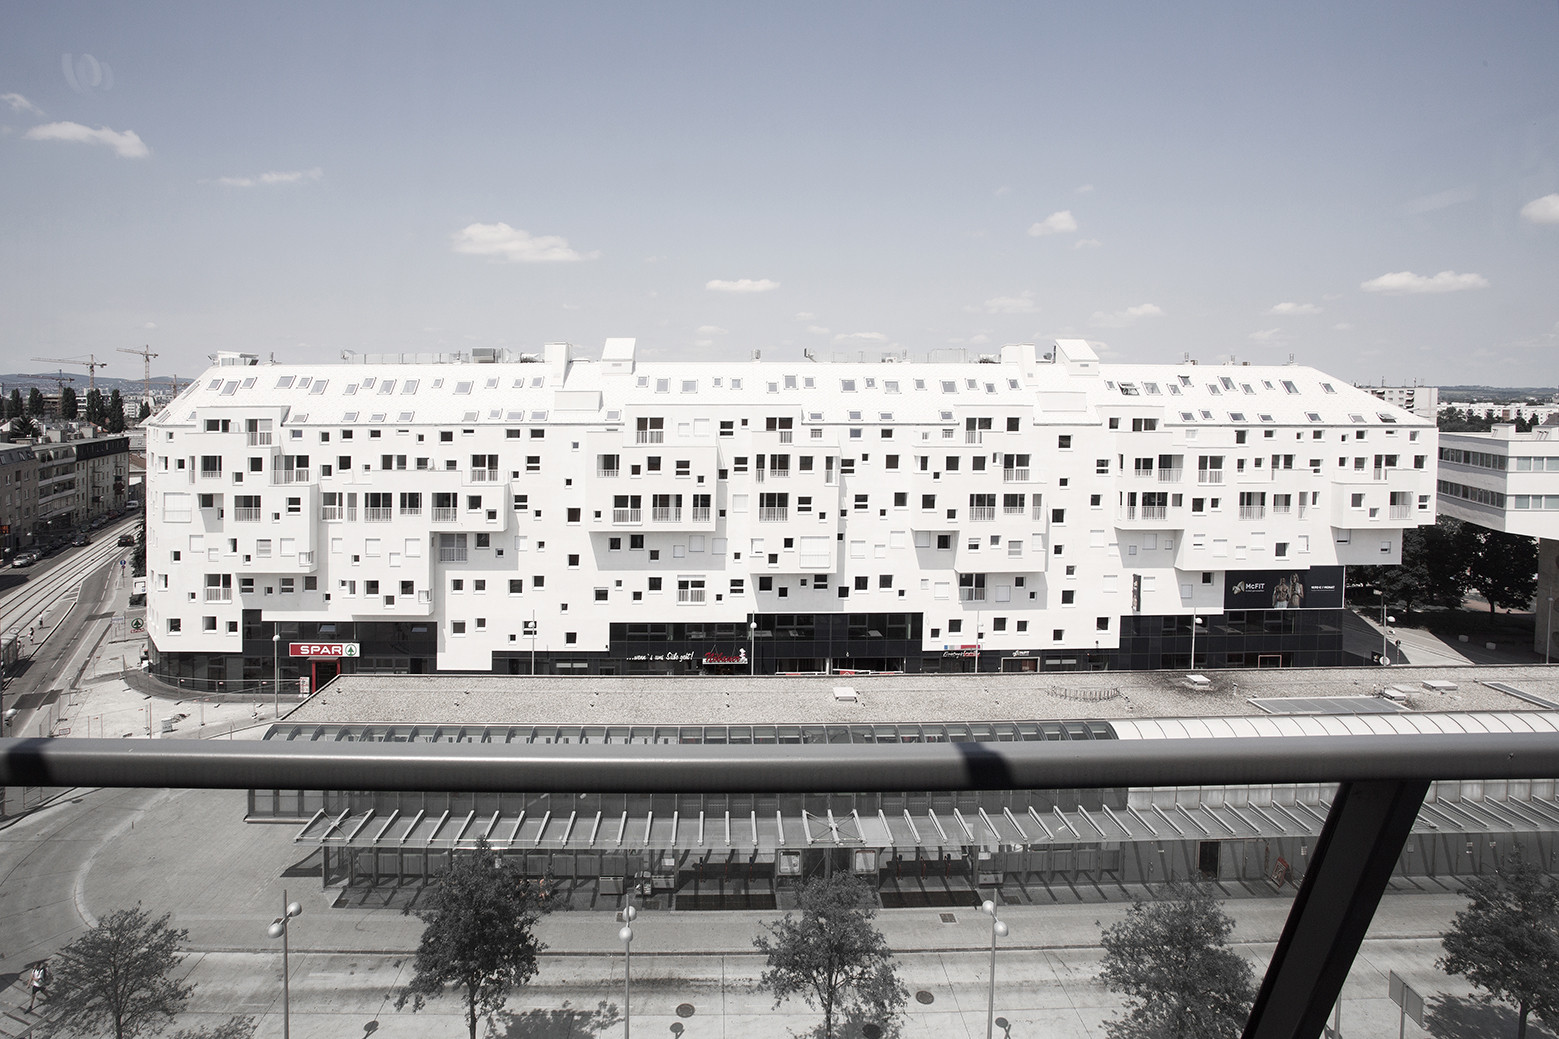 Doninpark / LOVE architecture and urbanism, © Jasmin Schuller